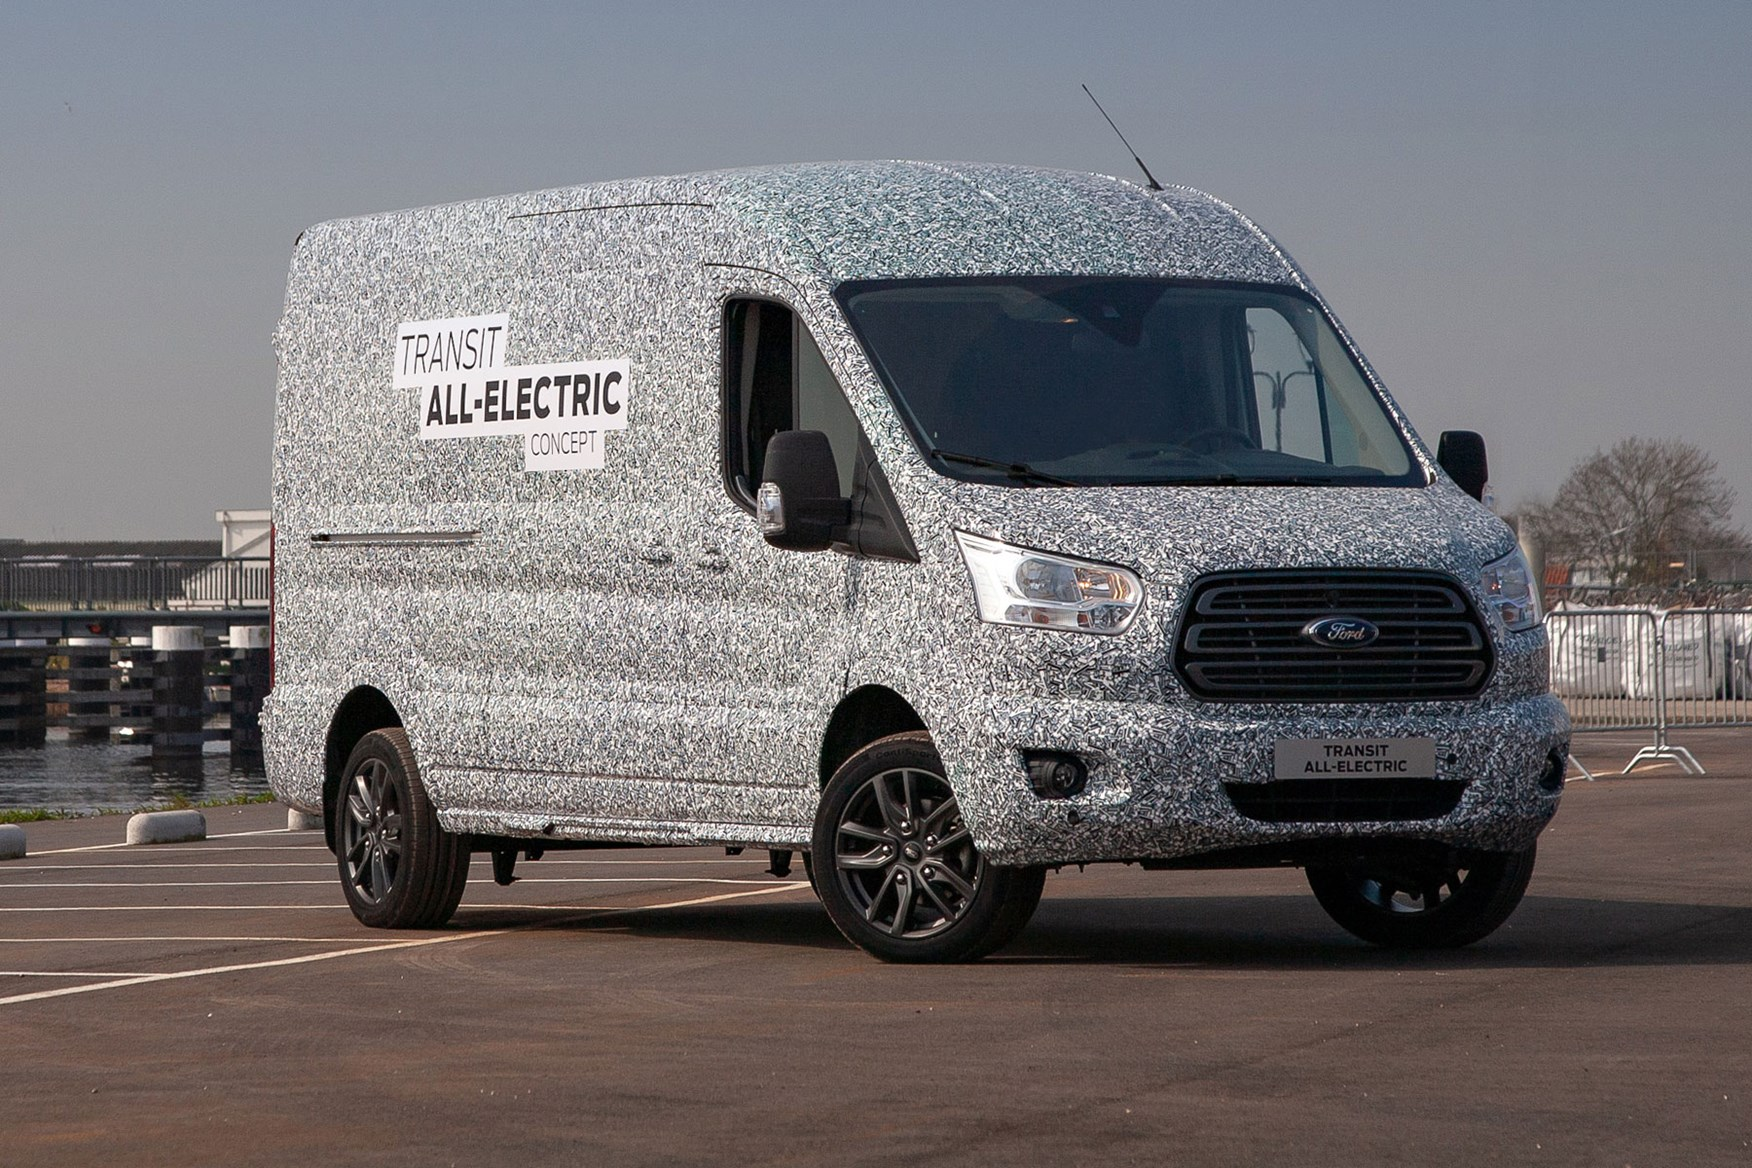 Following up on the announcement of the all-electric Ford Transit last year, CEO Jim Farley has confirmed that the production car is ready to debut and will do so next month.